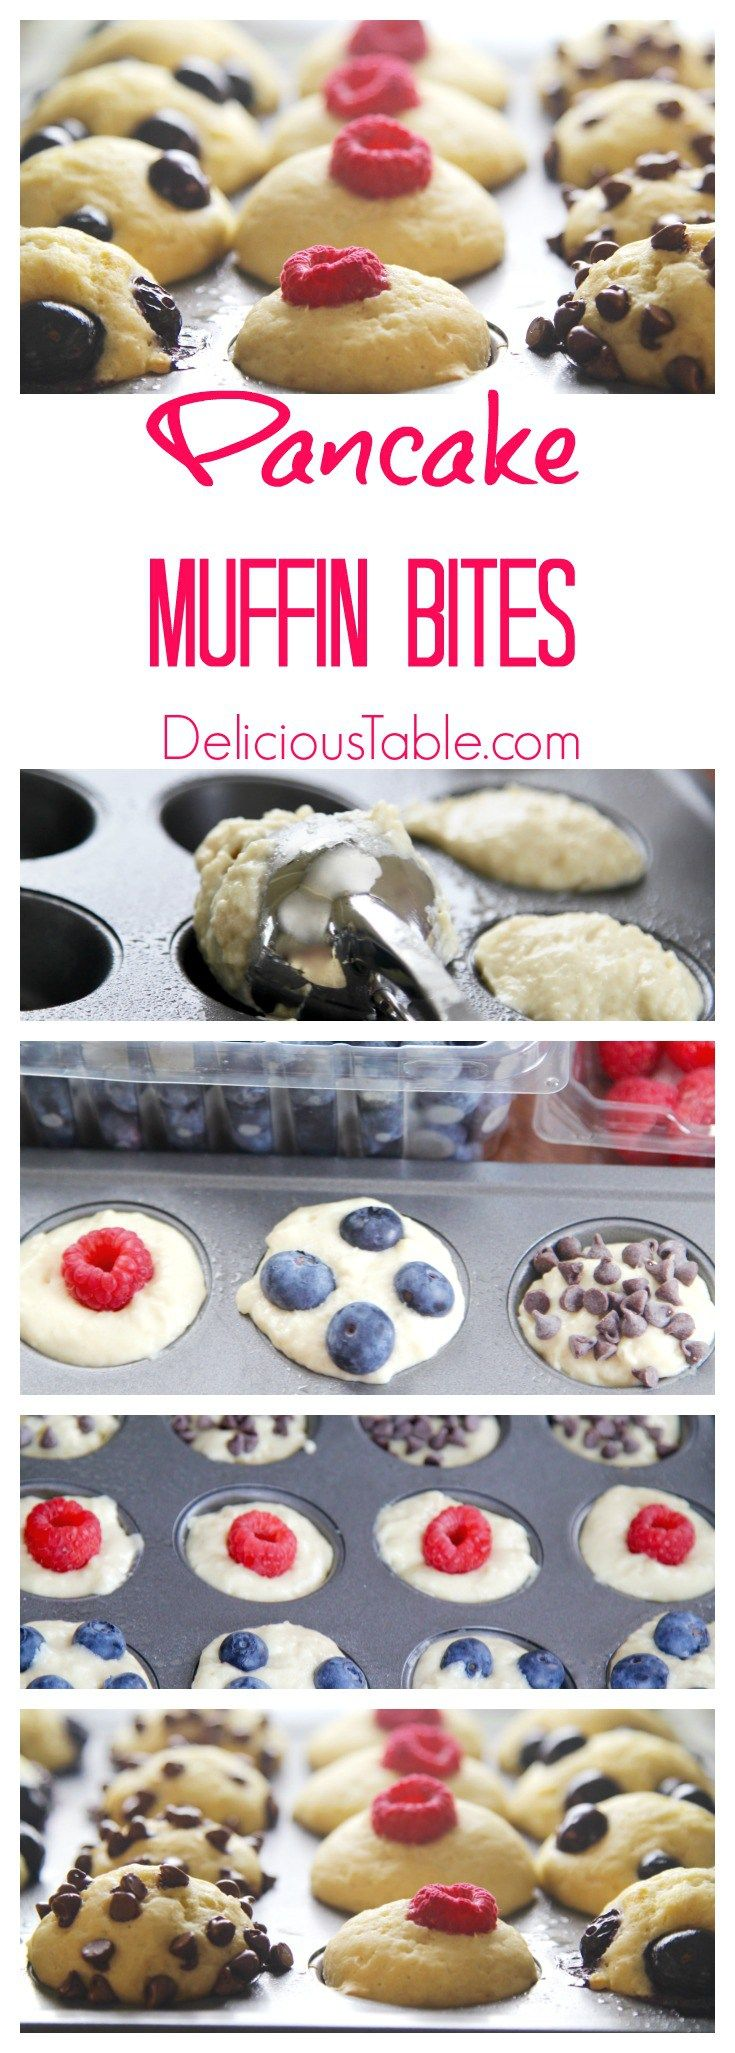 Best 25 pancake muffins ideas on pinterest brunch foods baked hand dip pancake muffin bites in warm maple syrup in small bowls on each plate ccuart Image collections